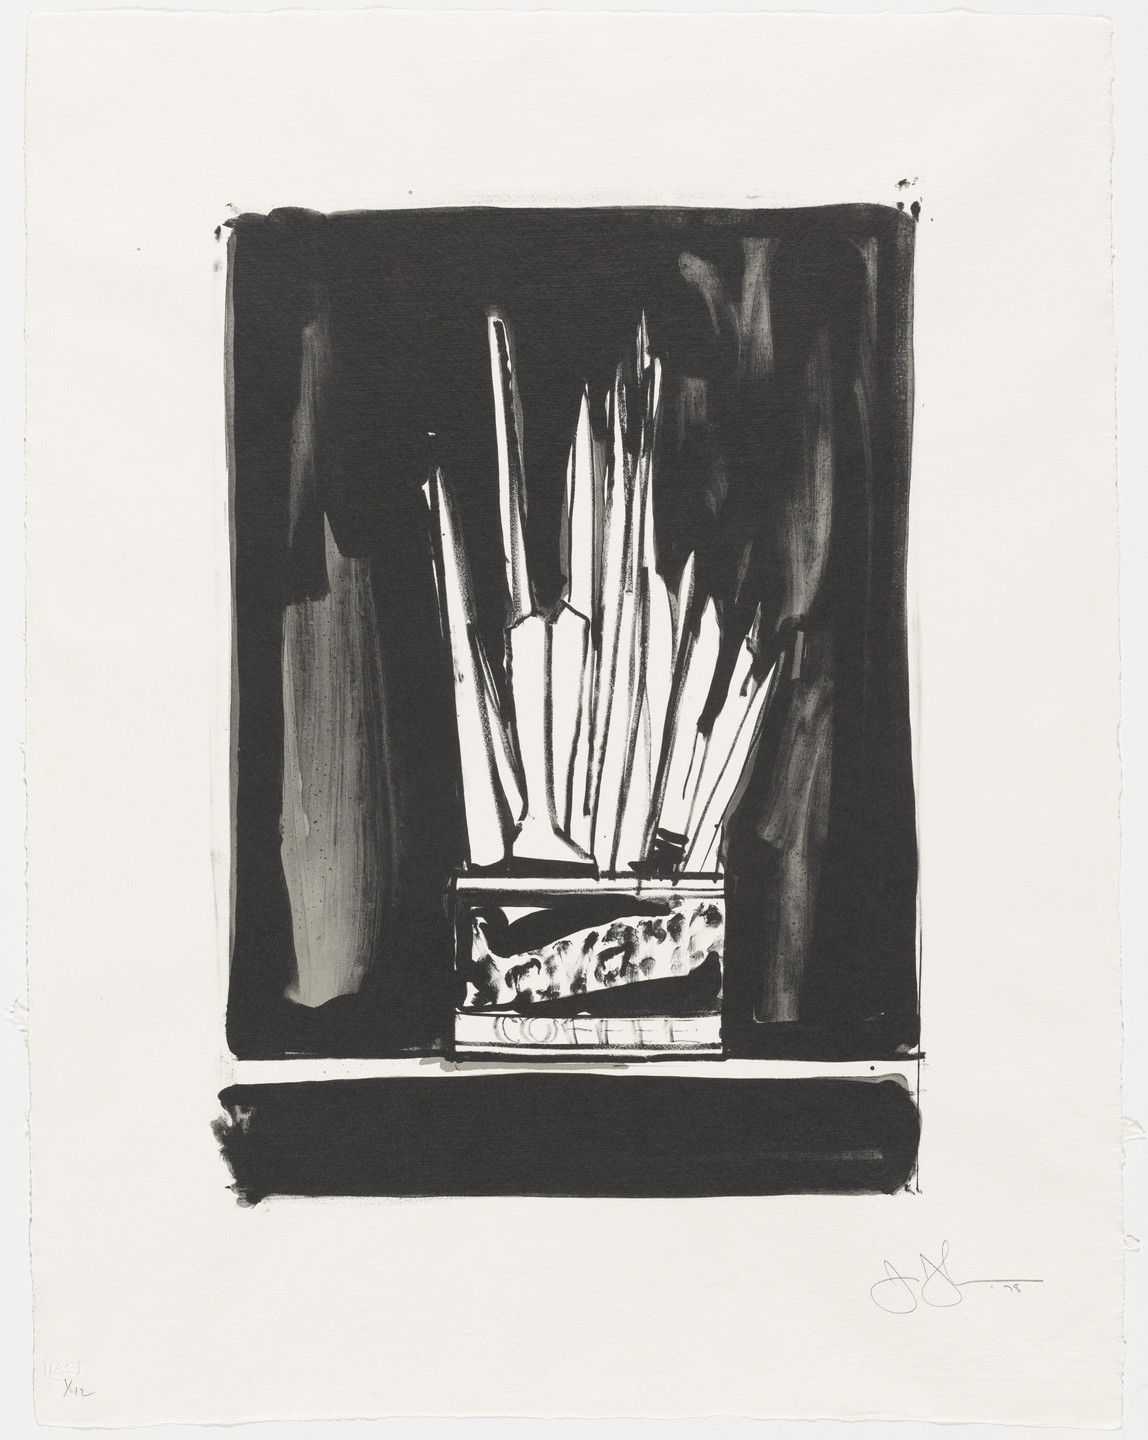 Jasper Johns. Savarin 2 (Wash and Line). 1978